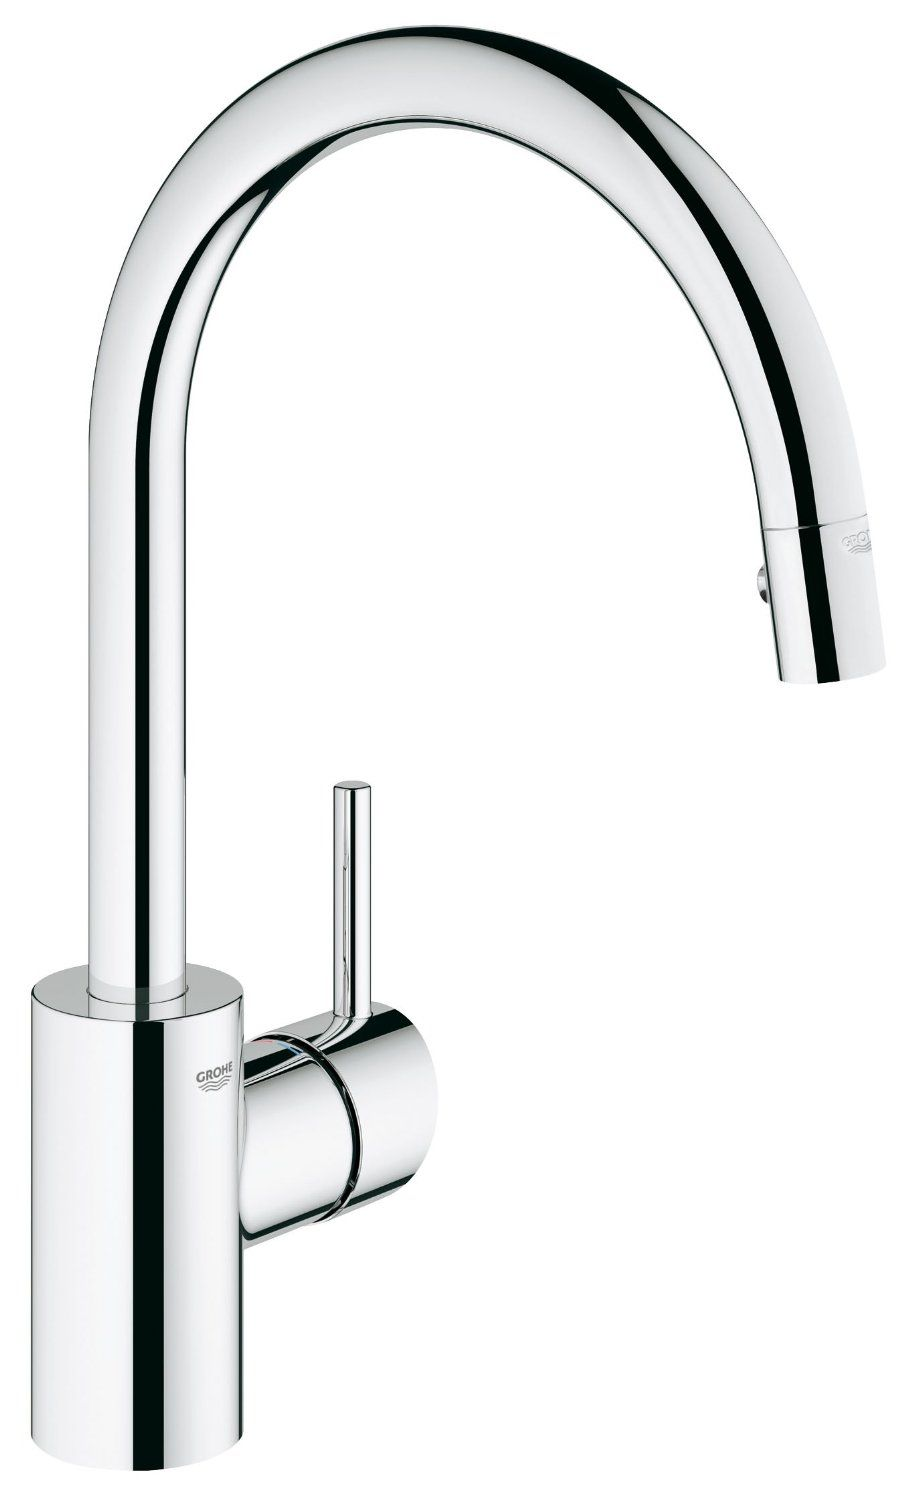 194 Grohe 32665001 Concetto Single Handle Pull Down Spray Kitchen